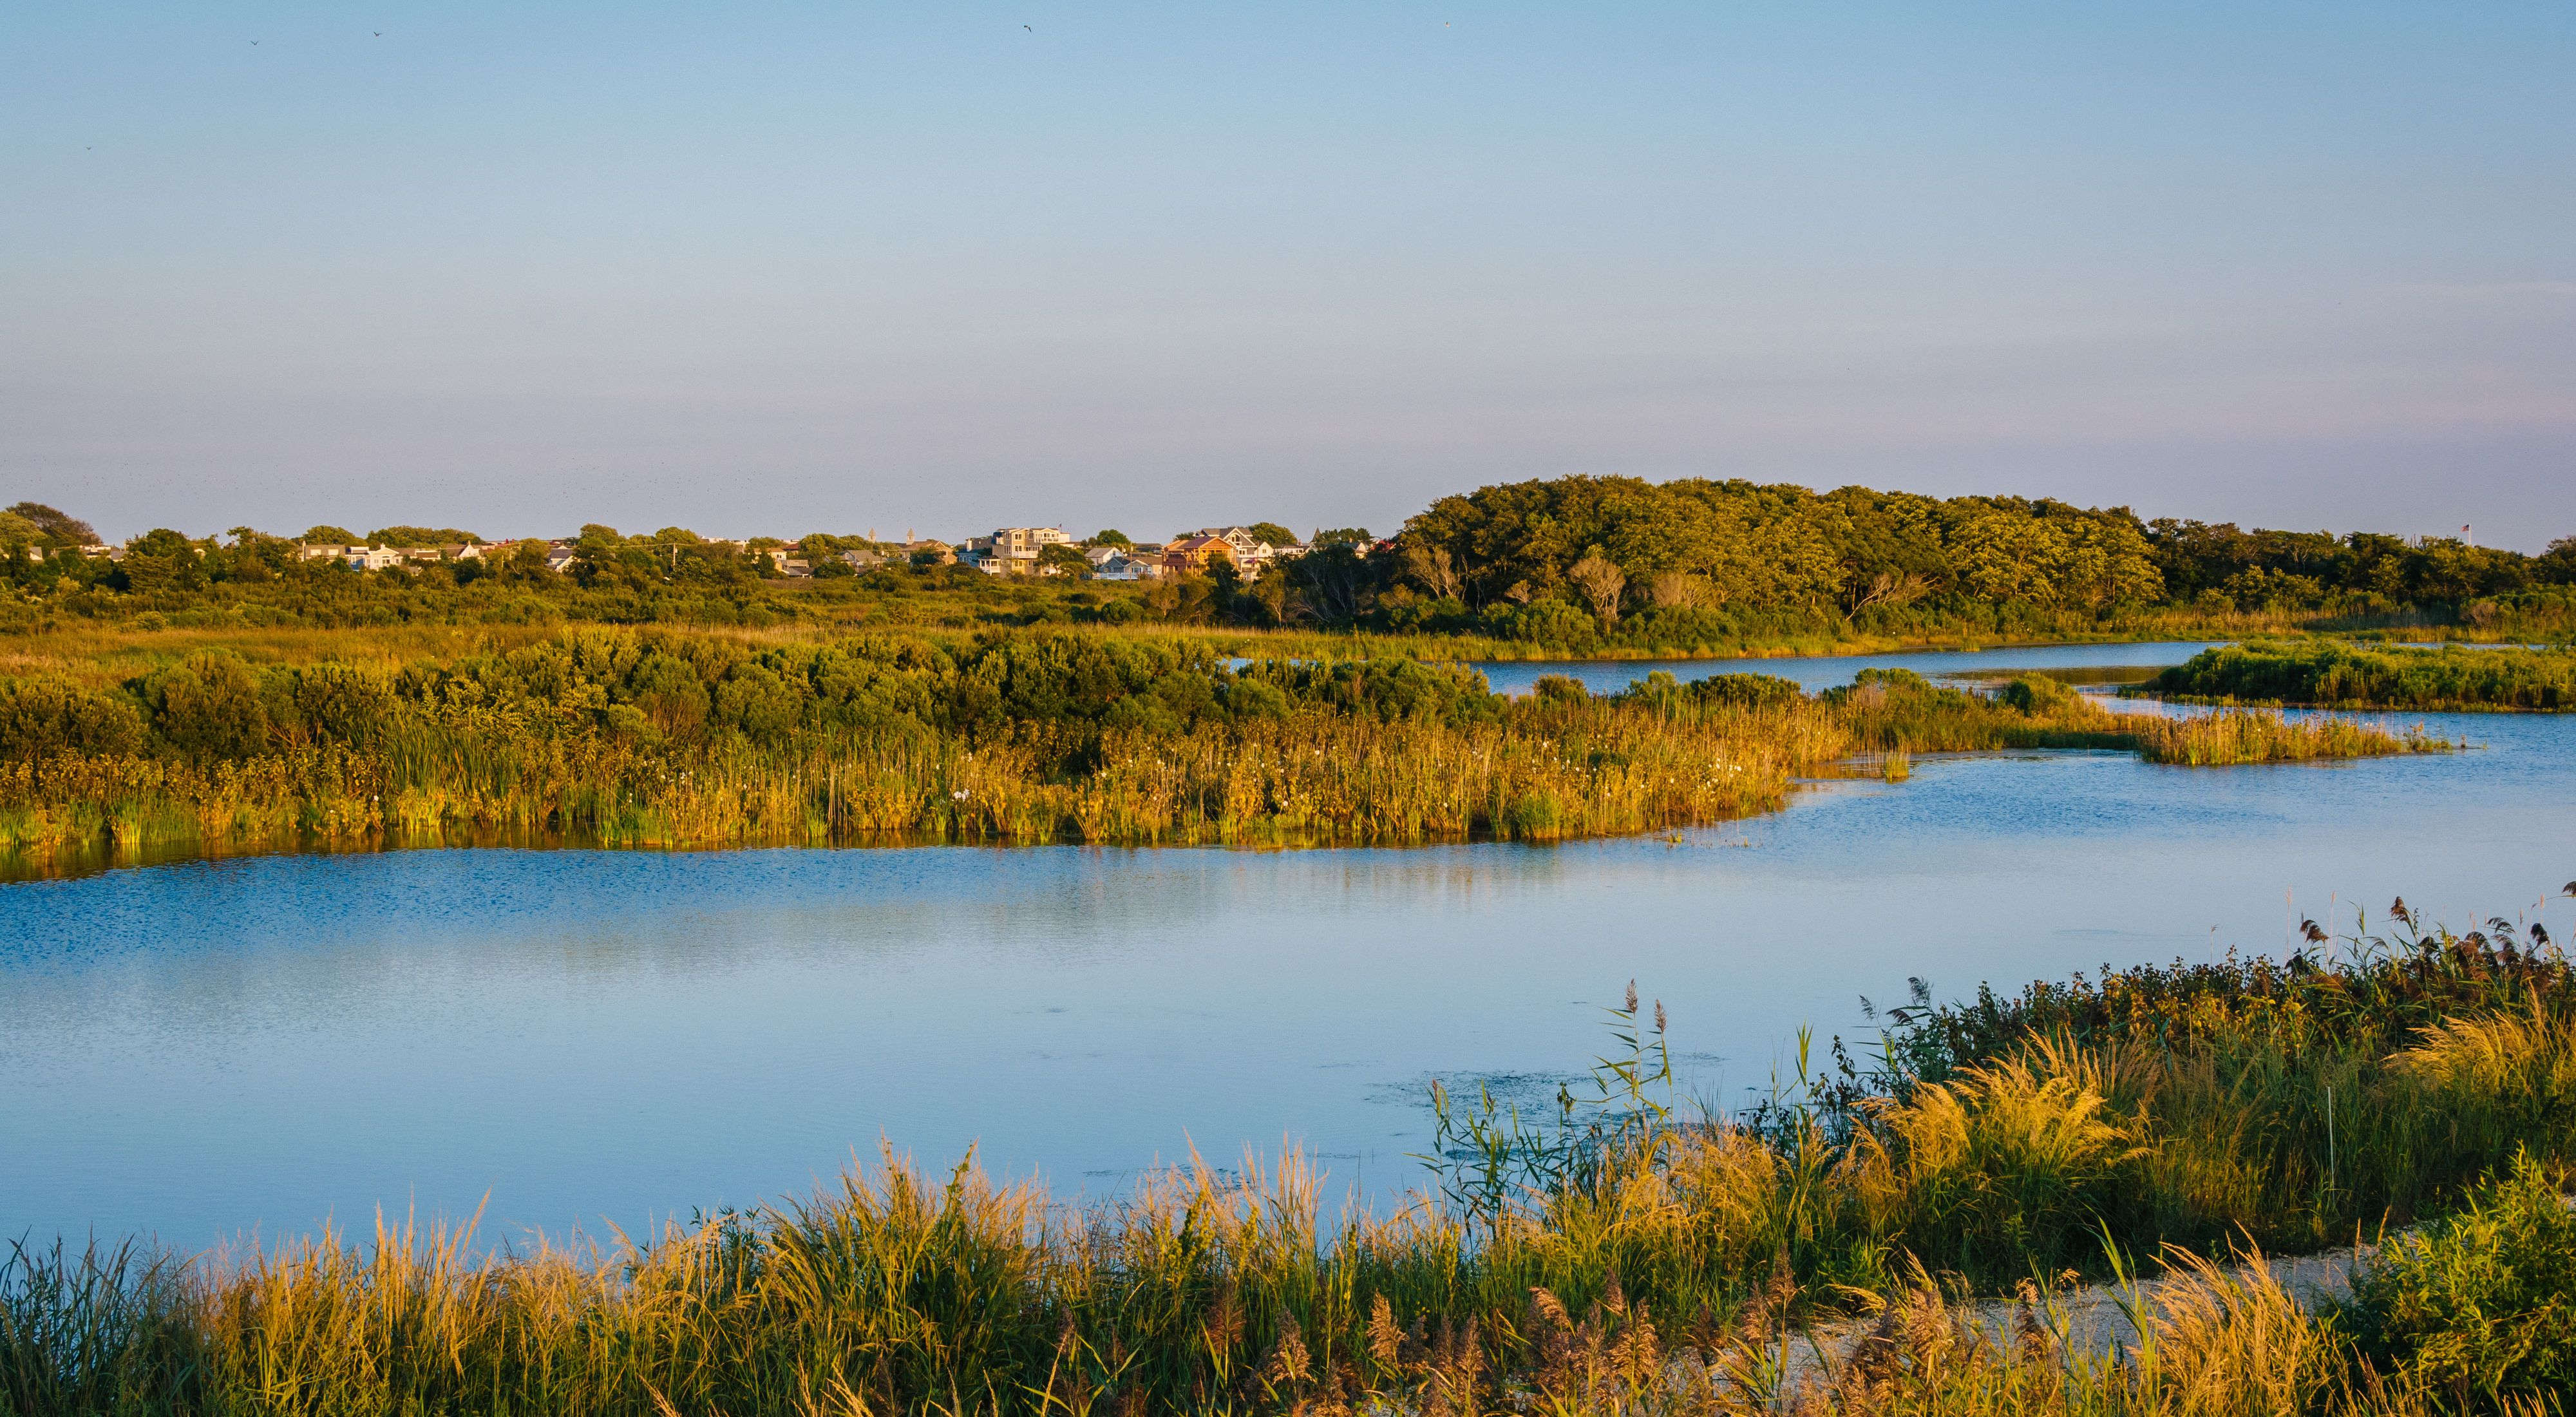 A freshwater pond is surrounded by tall wetland grasses. Overhead the moon is on display.